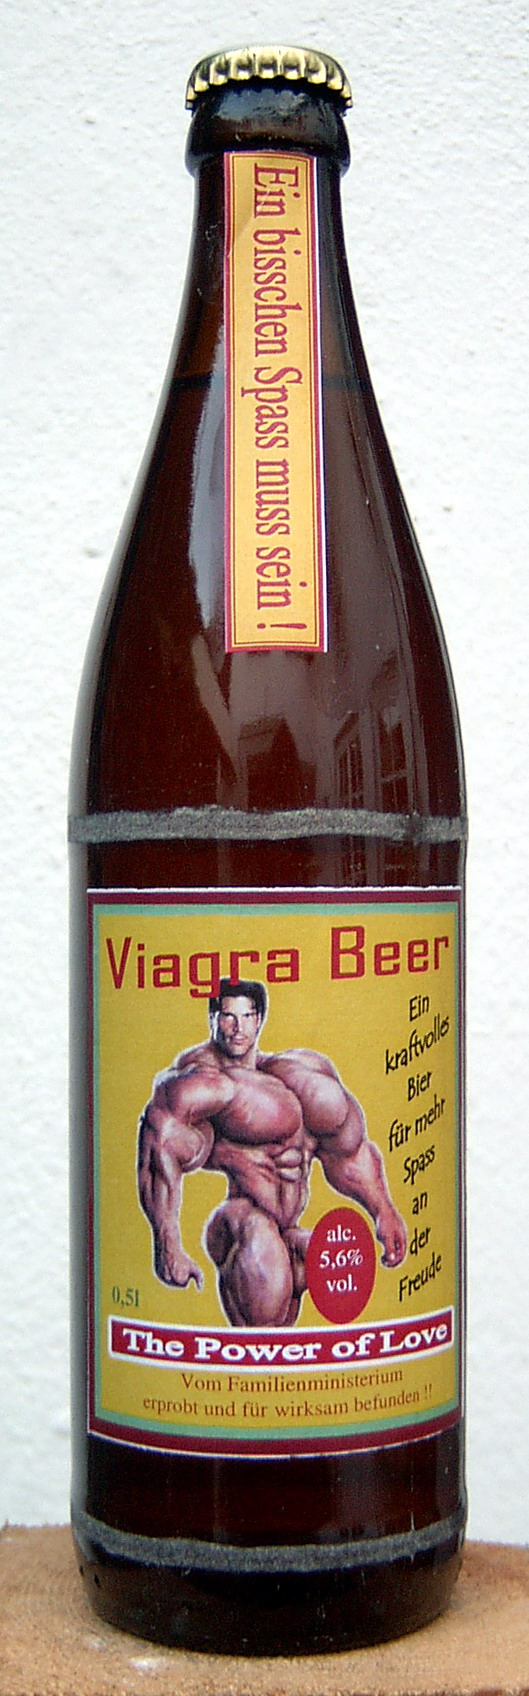 Viagra and beer